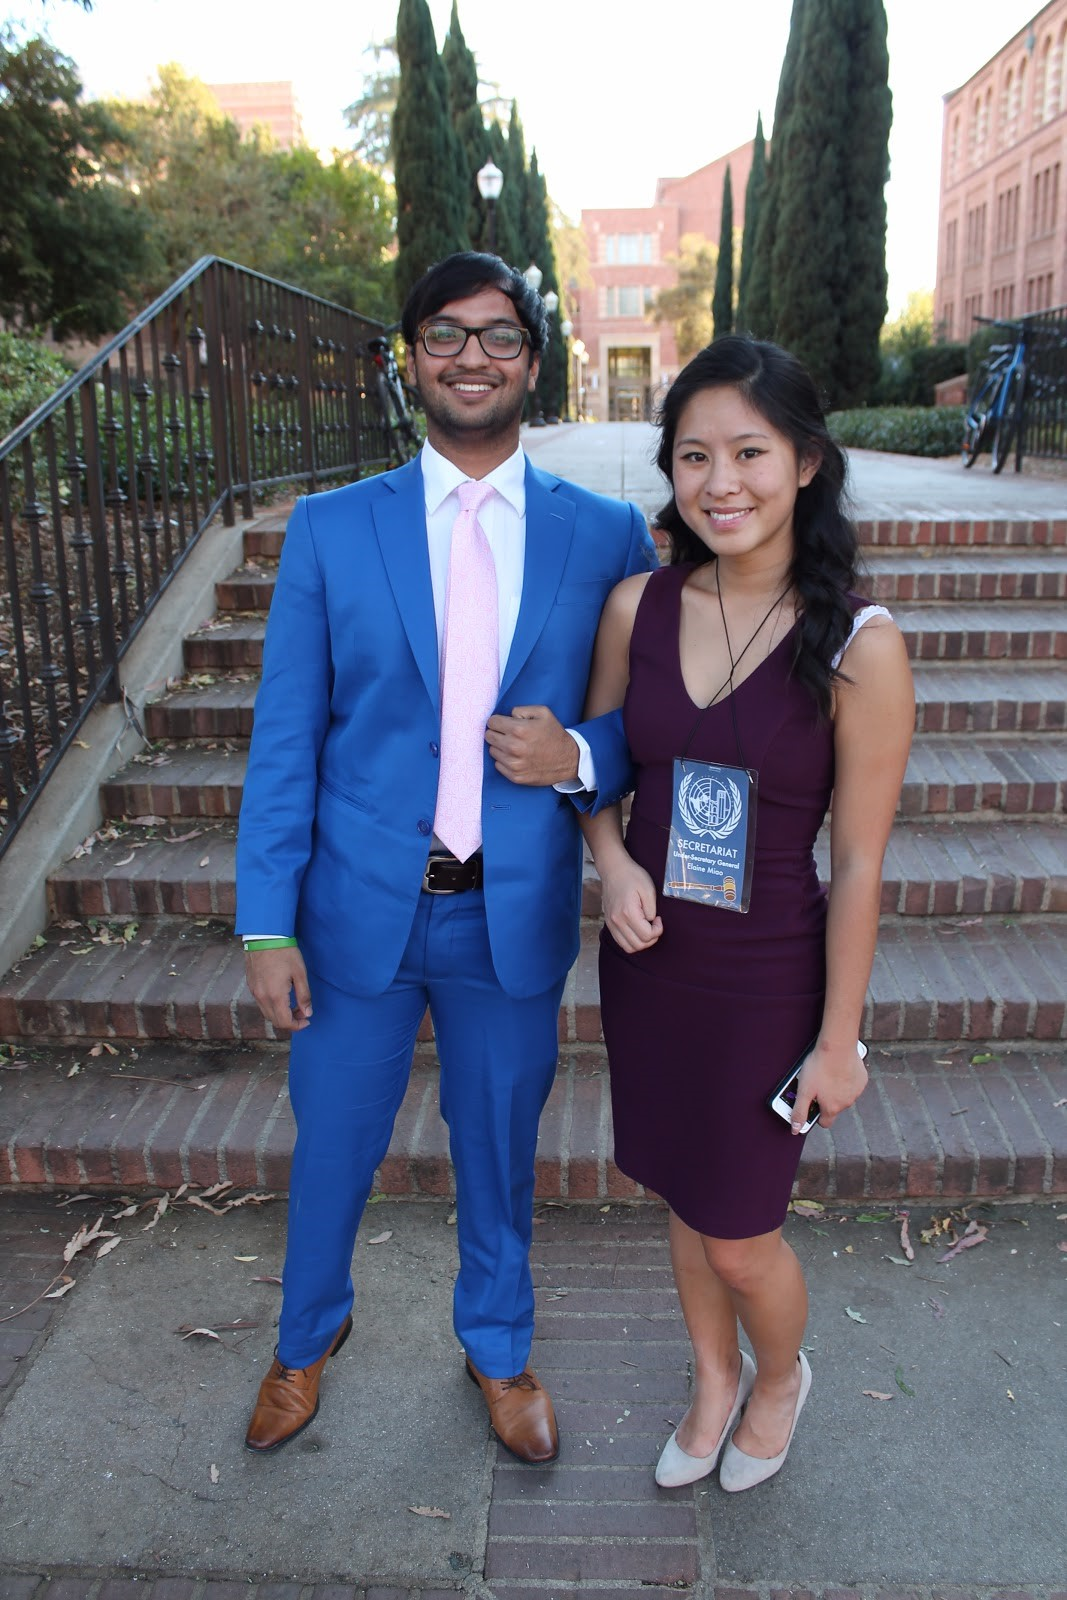 The delegates aren't the only ones with stellar fashion sense, our BruinMUN staffers have got it too.